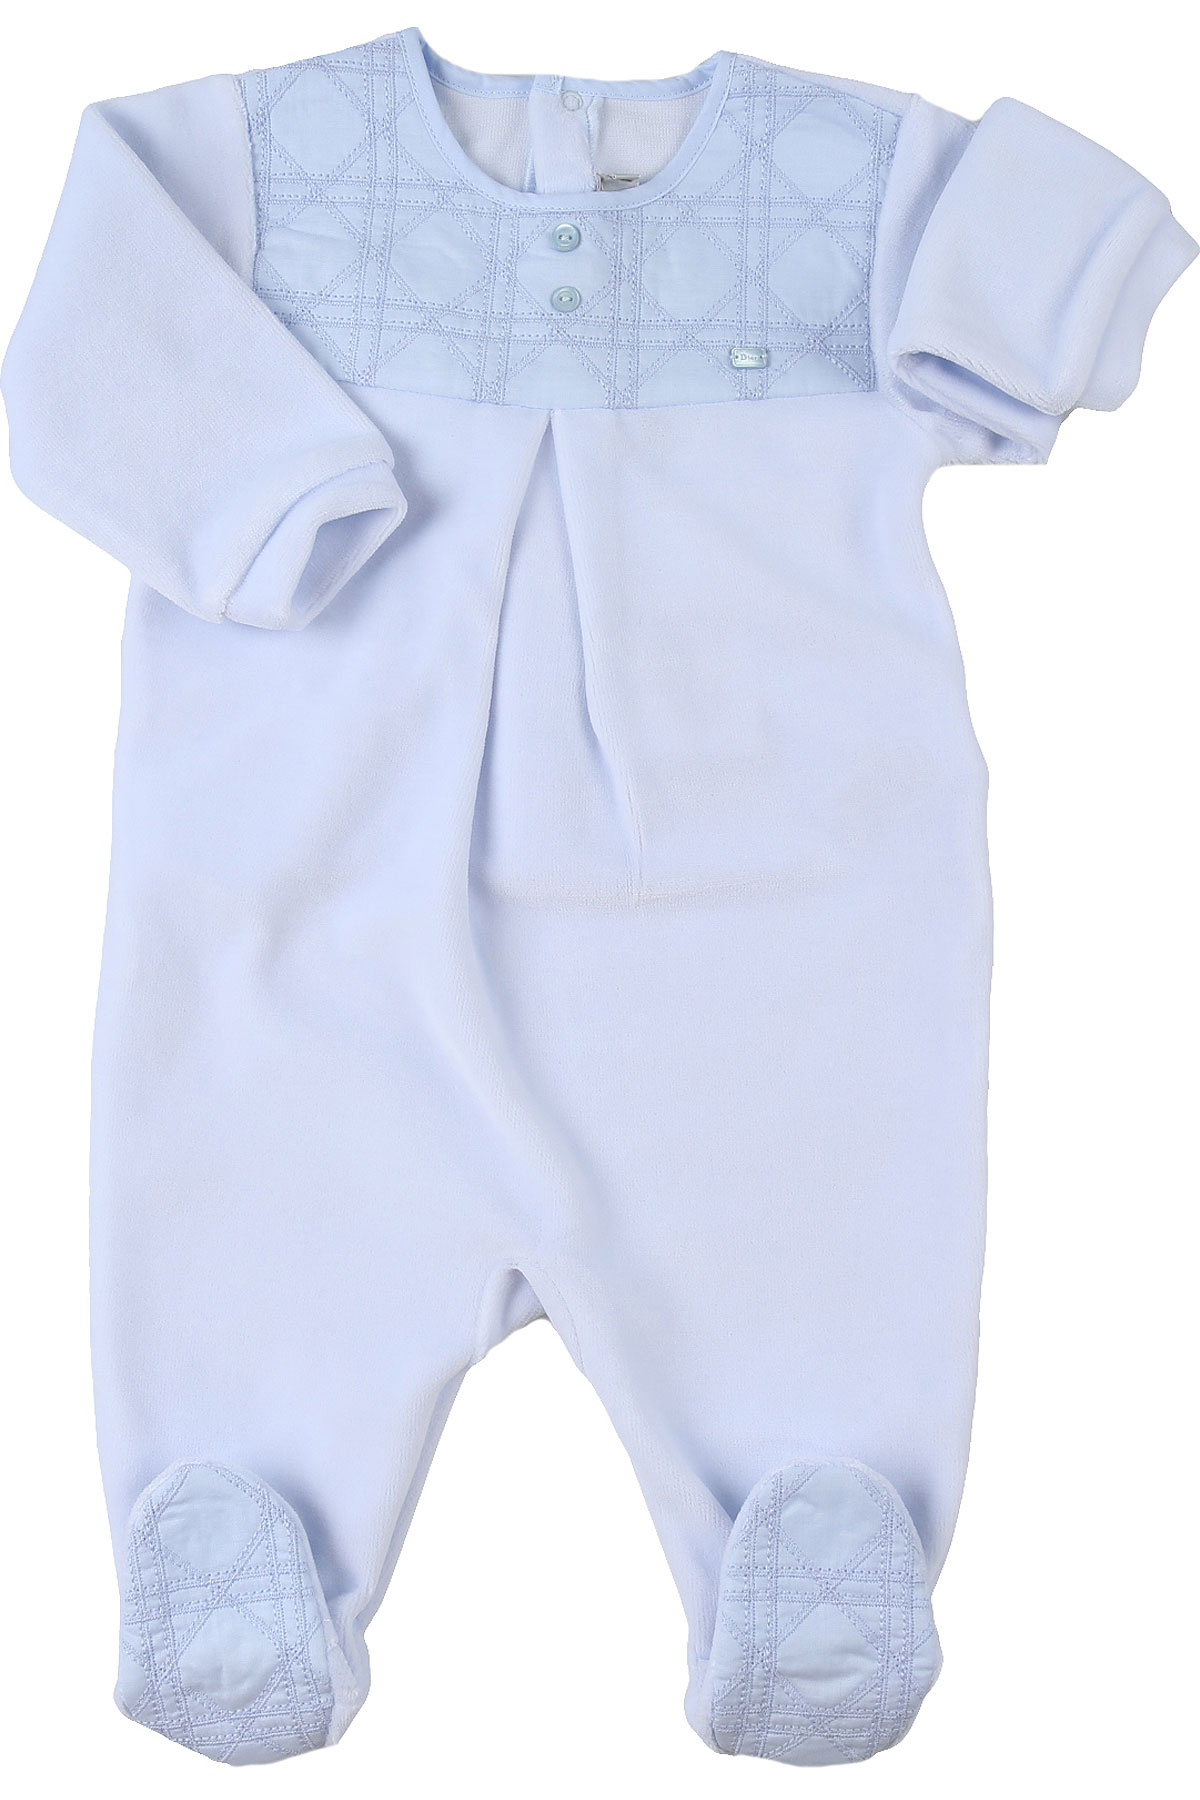 Baby Dior Baby Bodysuits & Onesies for Boys, Skyblue, Cotton, 2019, 1M 3M 6M